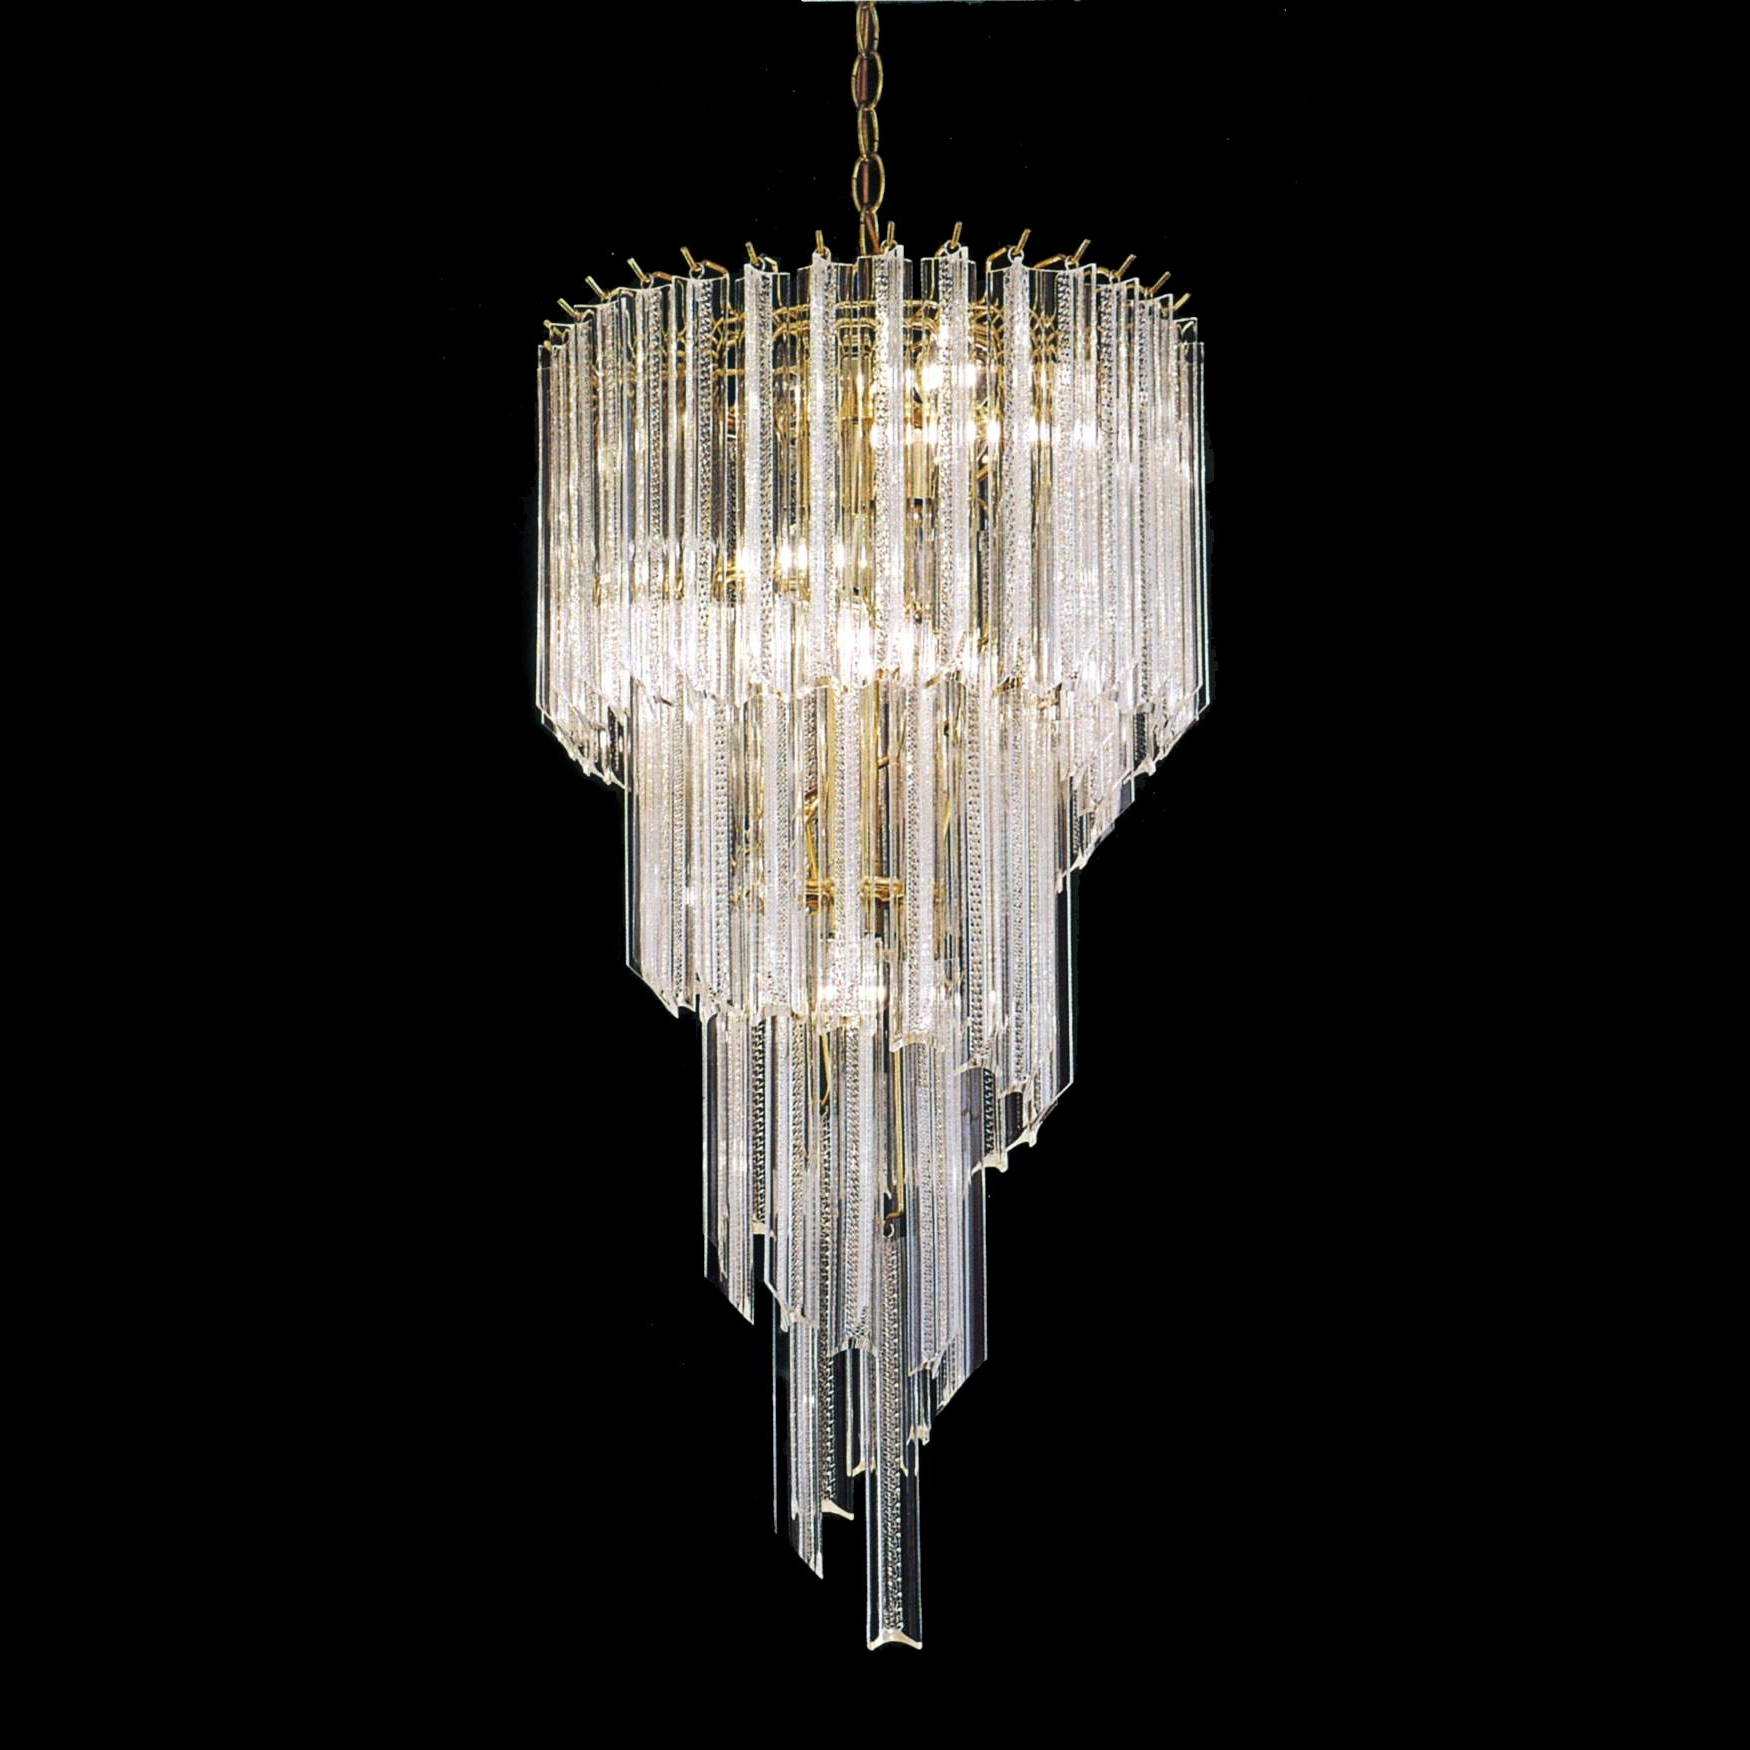 Trendy Chandeliers Design : Marvelous Acrylic Light Polished Brass Spiral Regarding Acrylic Chandeliers (View 15 of 15)